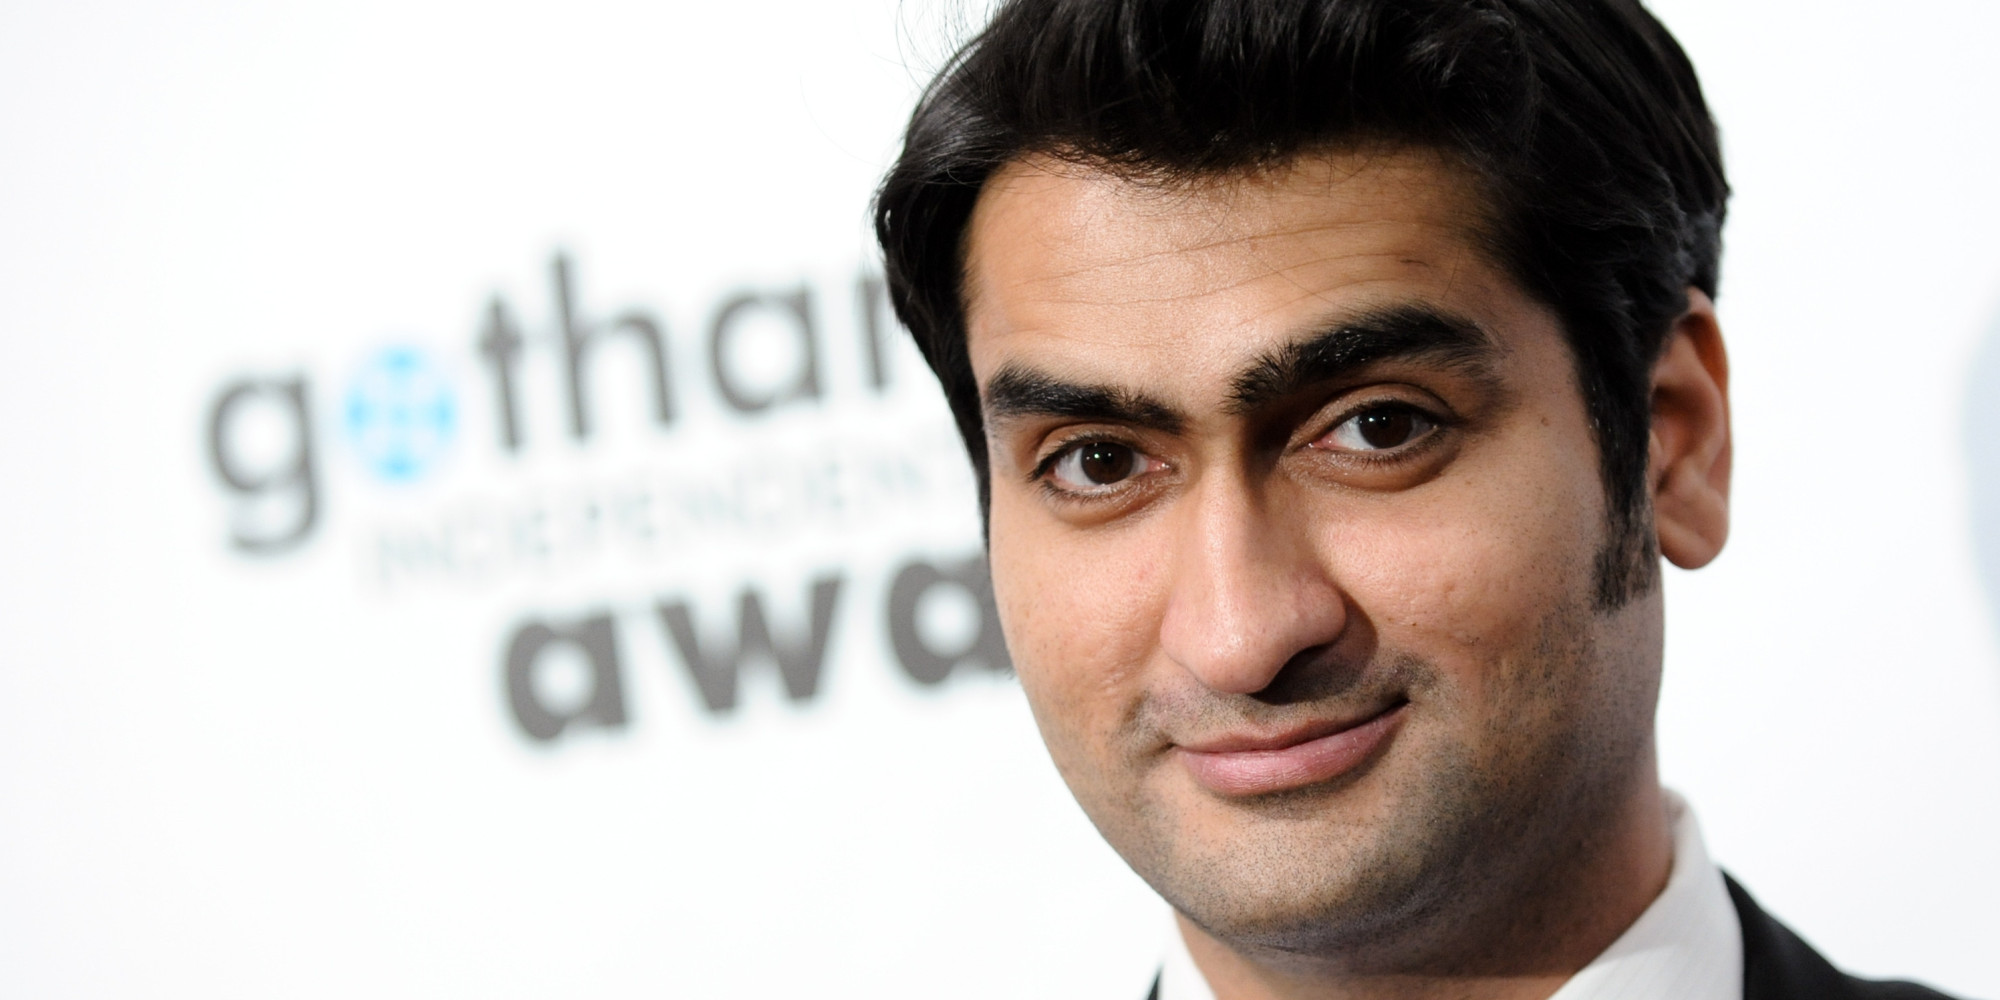 Kumail Nanjiani (The Big Sick, Silicon Valley)